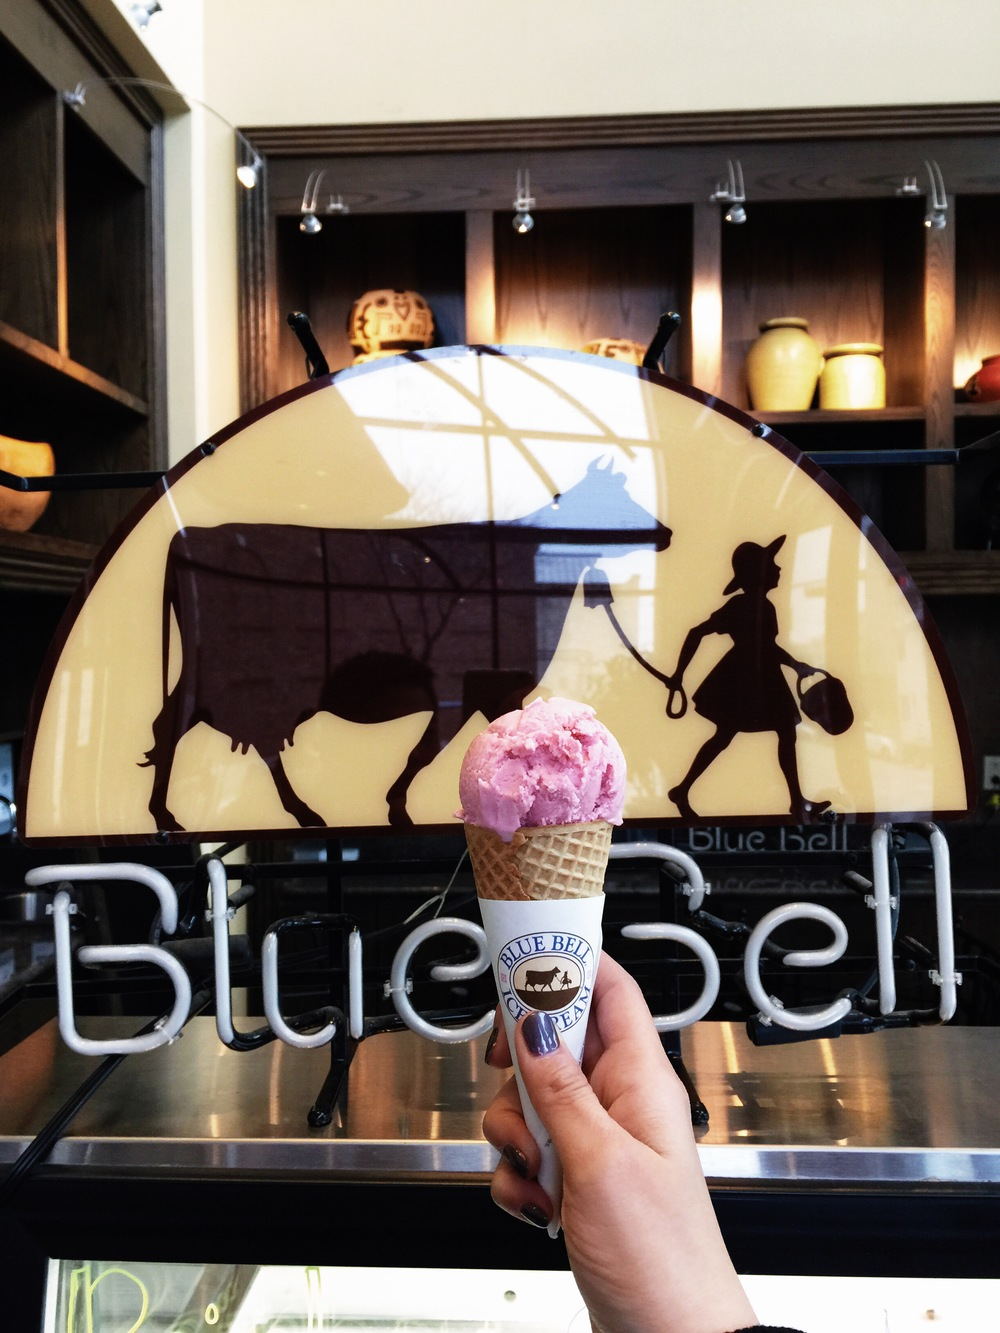 {the closest thing to bluebell creameries to us. java jive inside of our hotel! strawberry ice cream.}